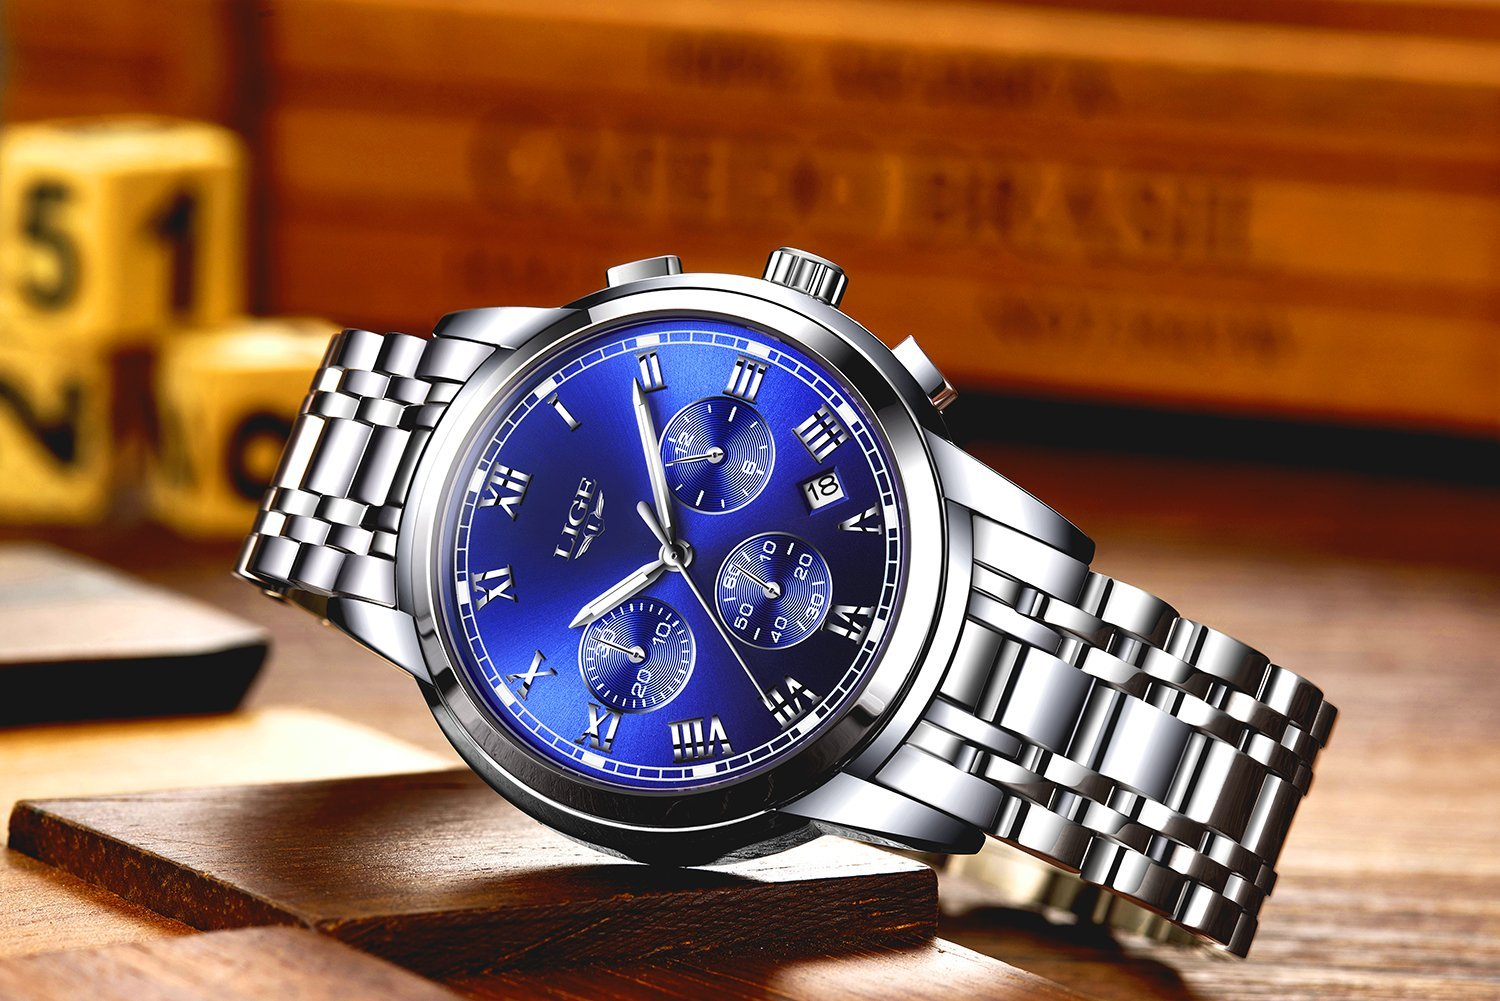 Men's Watches,Stainless Steel Band Waterproof Quartz Watch, LIGE Luxury Business Analog Chronograph Date Wrist Watch by LIGE (Image #3)